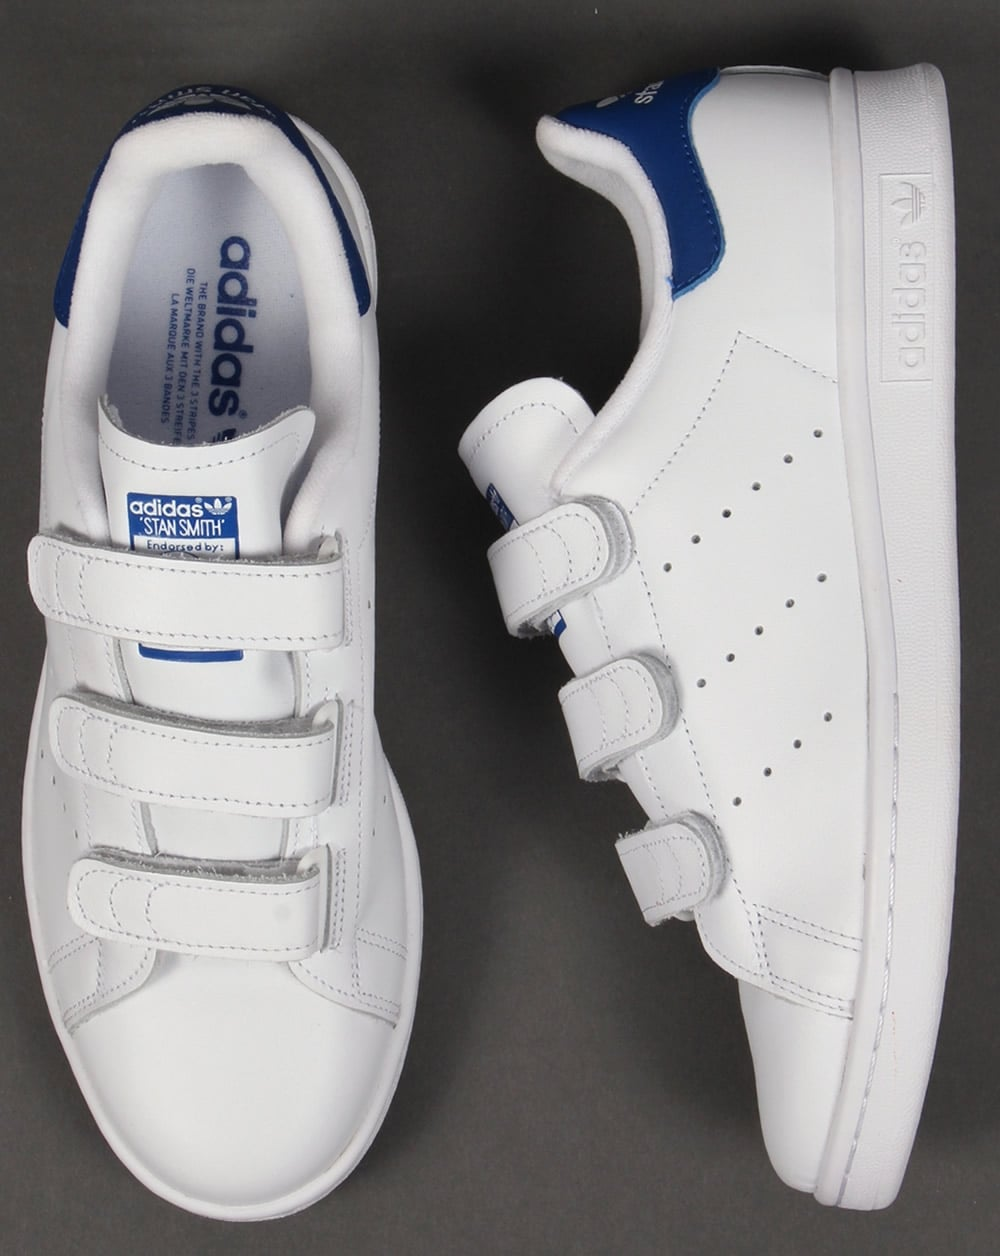 7c0d52b4495ff Adidas Trainers Adidas Stan Smith CF Trainers WhiteRoyal Blue